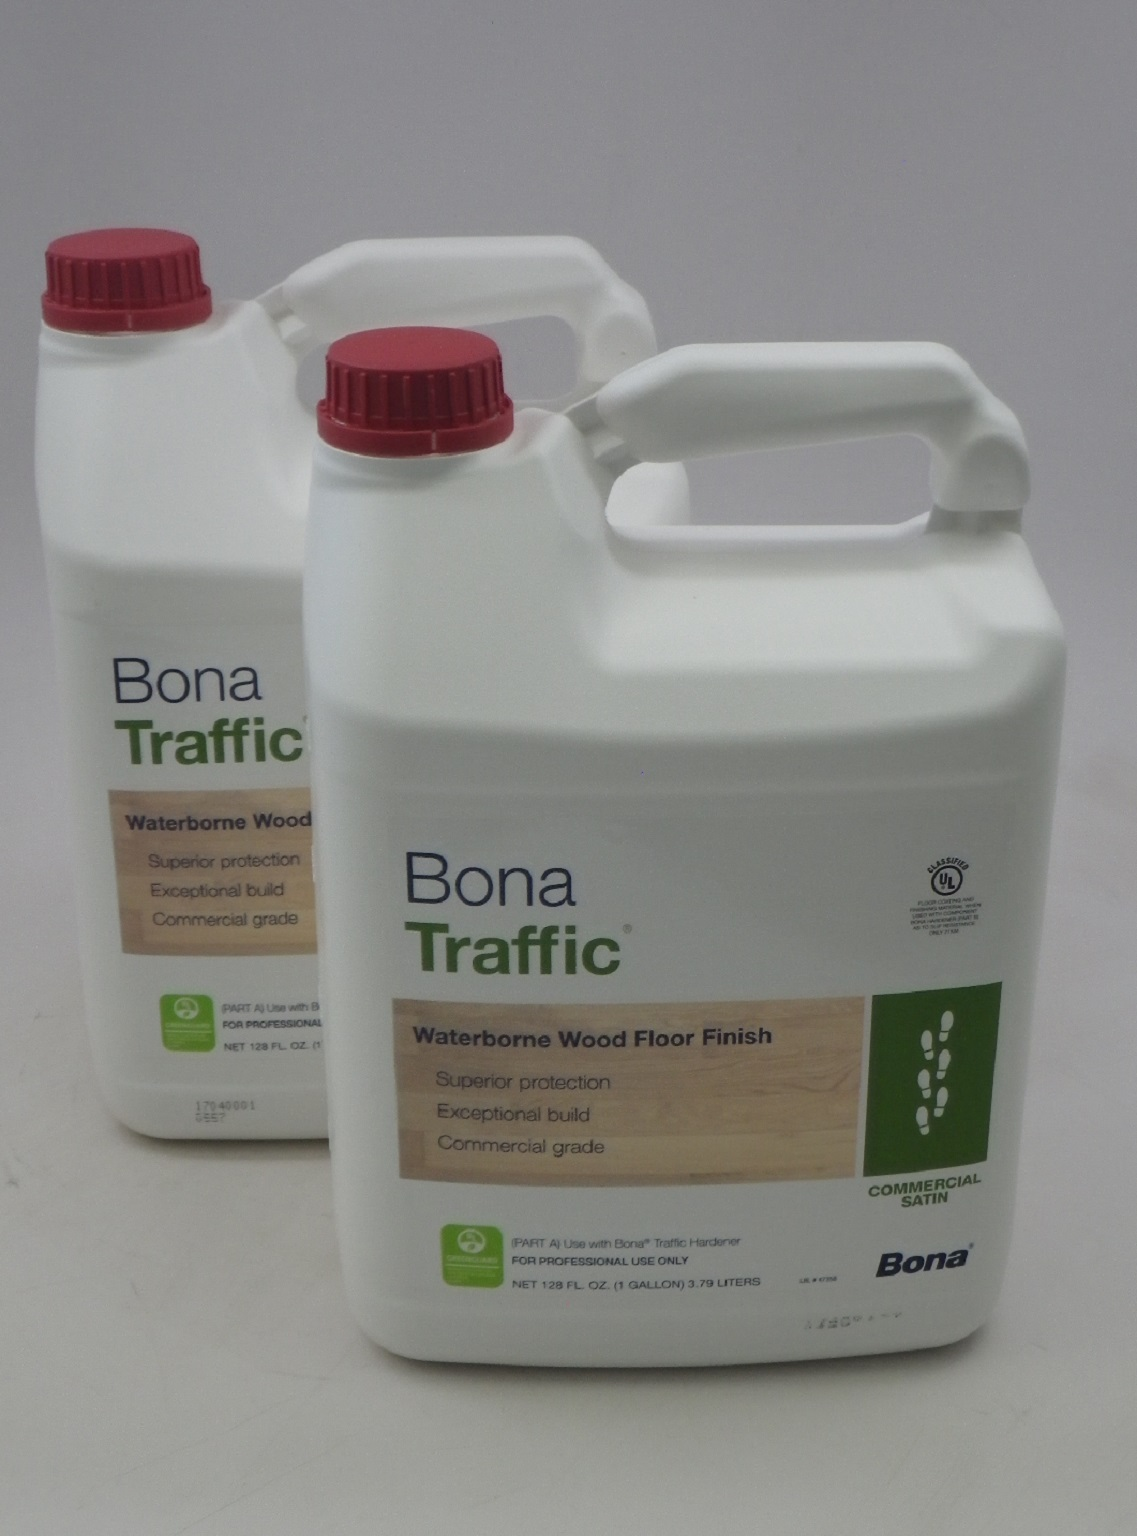 Bona Traffic Two Component Water Based Wood Floor Finish